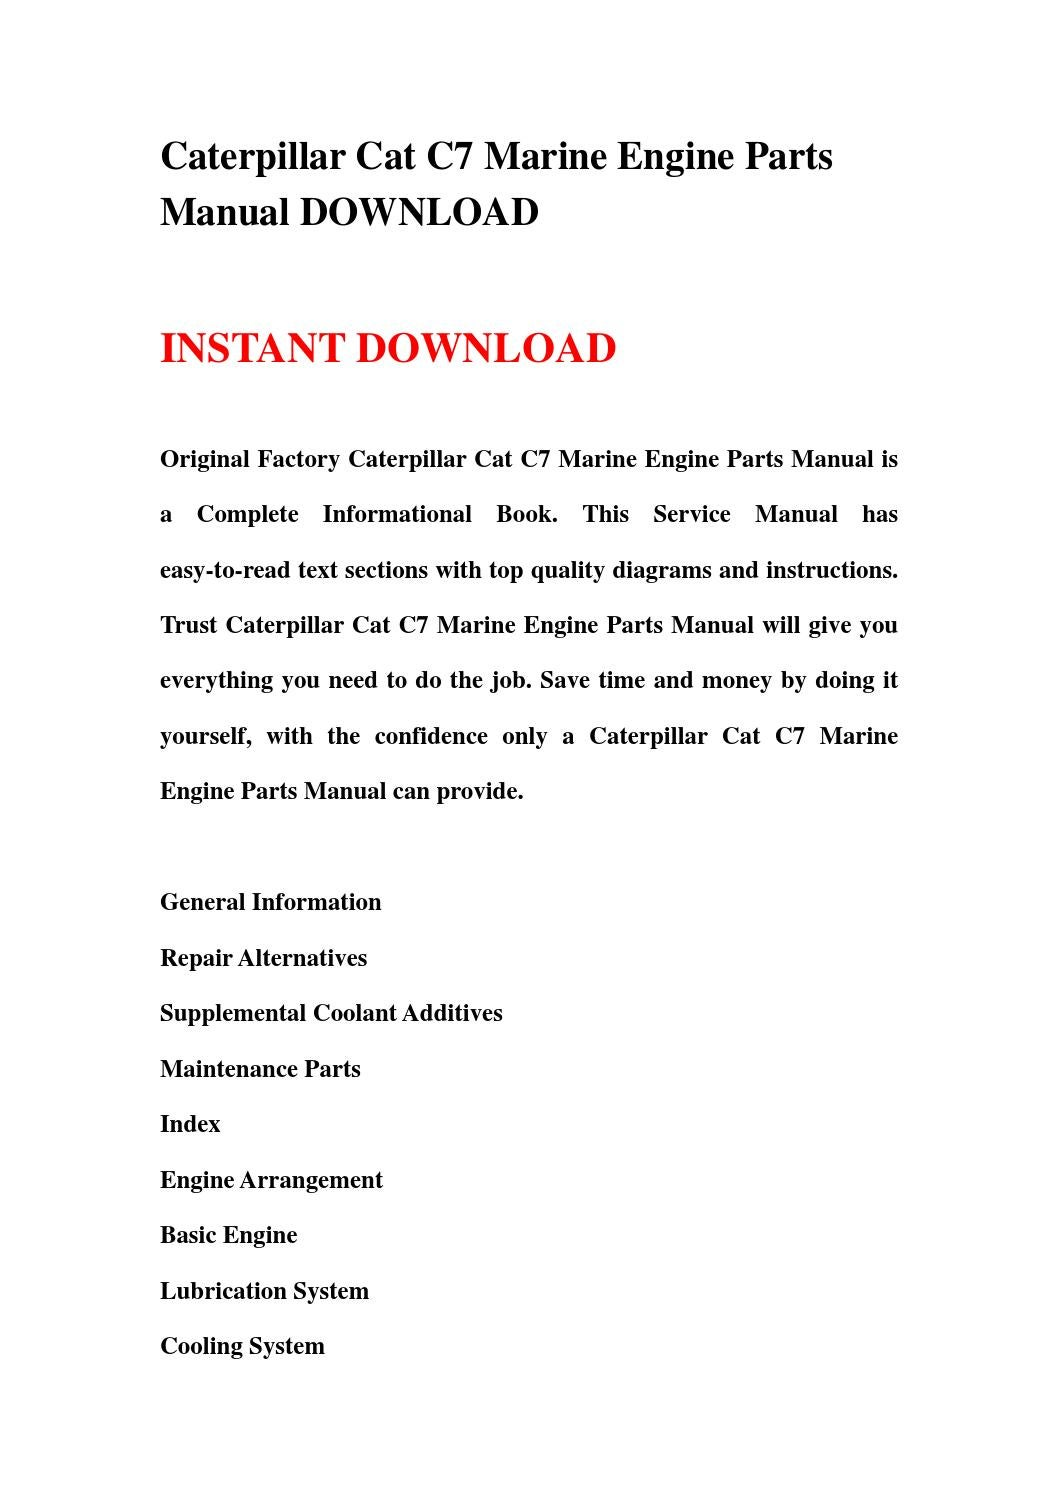 hight resolution of caterpillar cat c7 marine engine parts manual download by hhgsbebfhb issuu